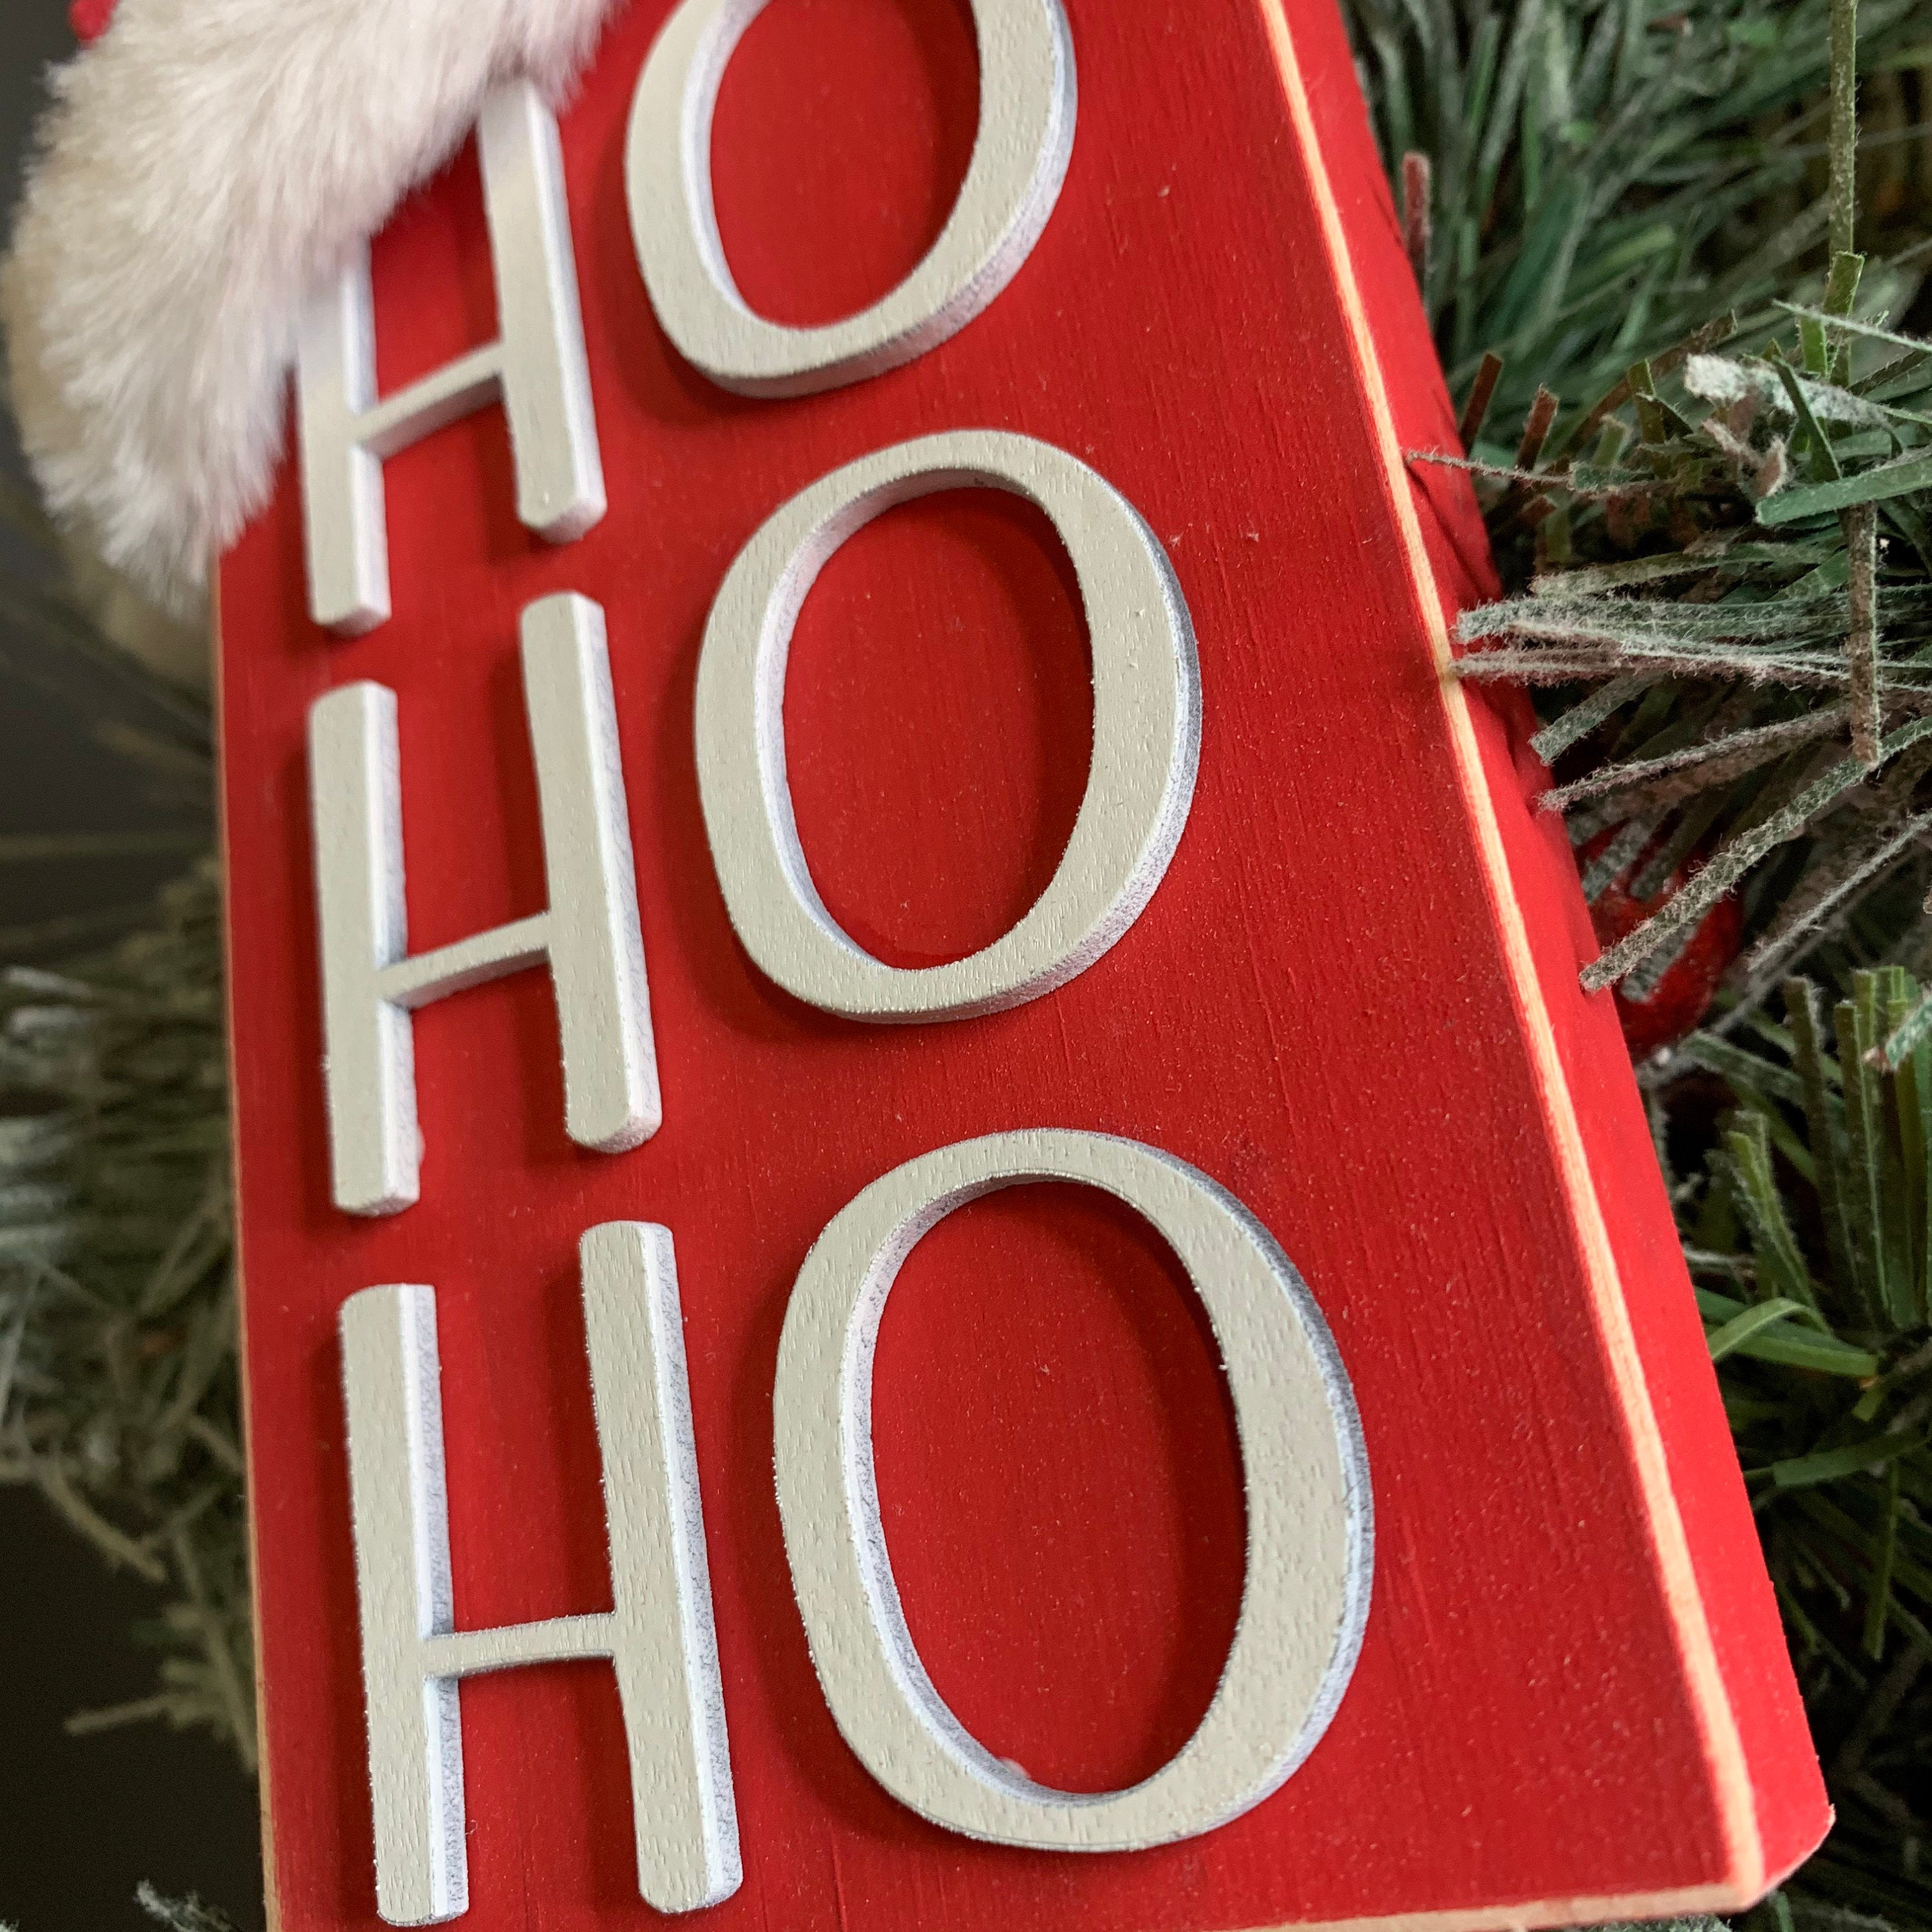 Ho Ho Ho Christmas Red 3D Wood Sign | Christmas sign | Small wood sign | Christmas Decor | Christmas | December Sign | Tiered tray